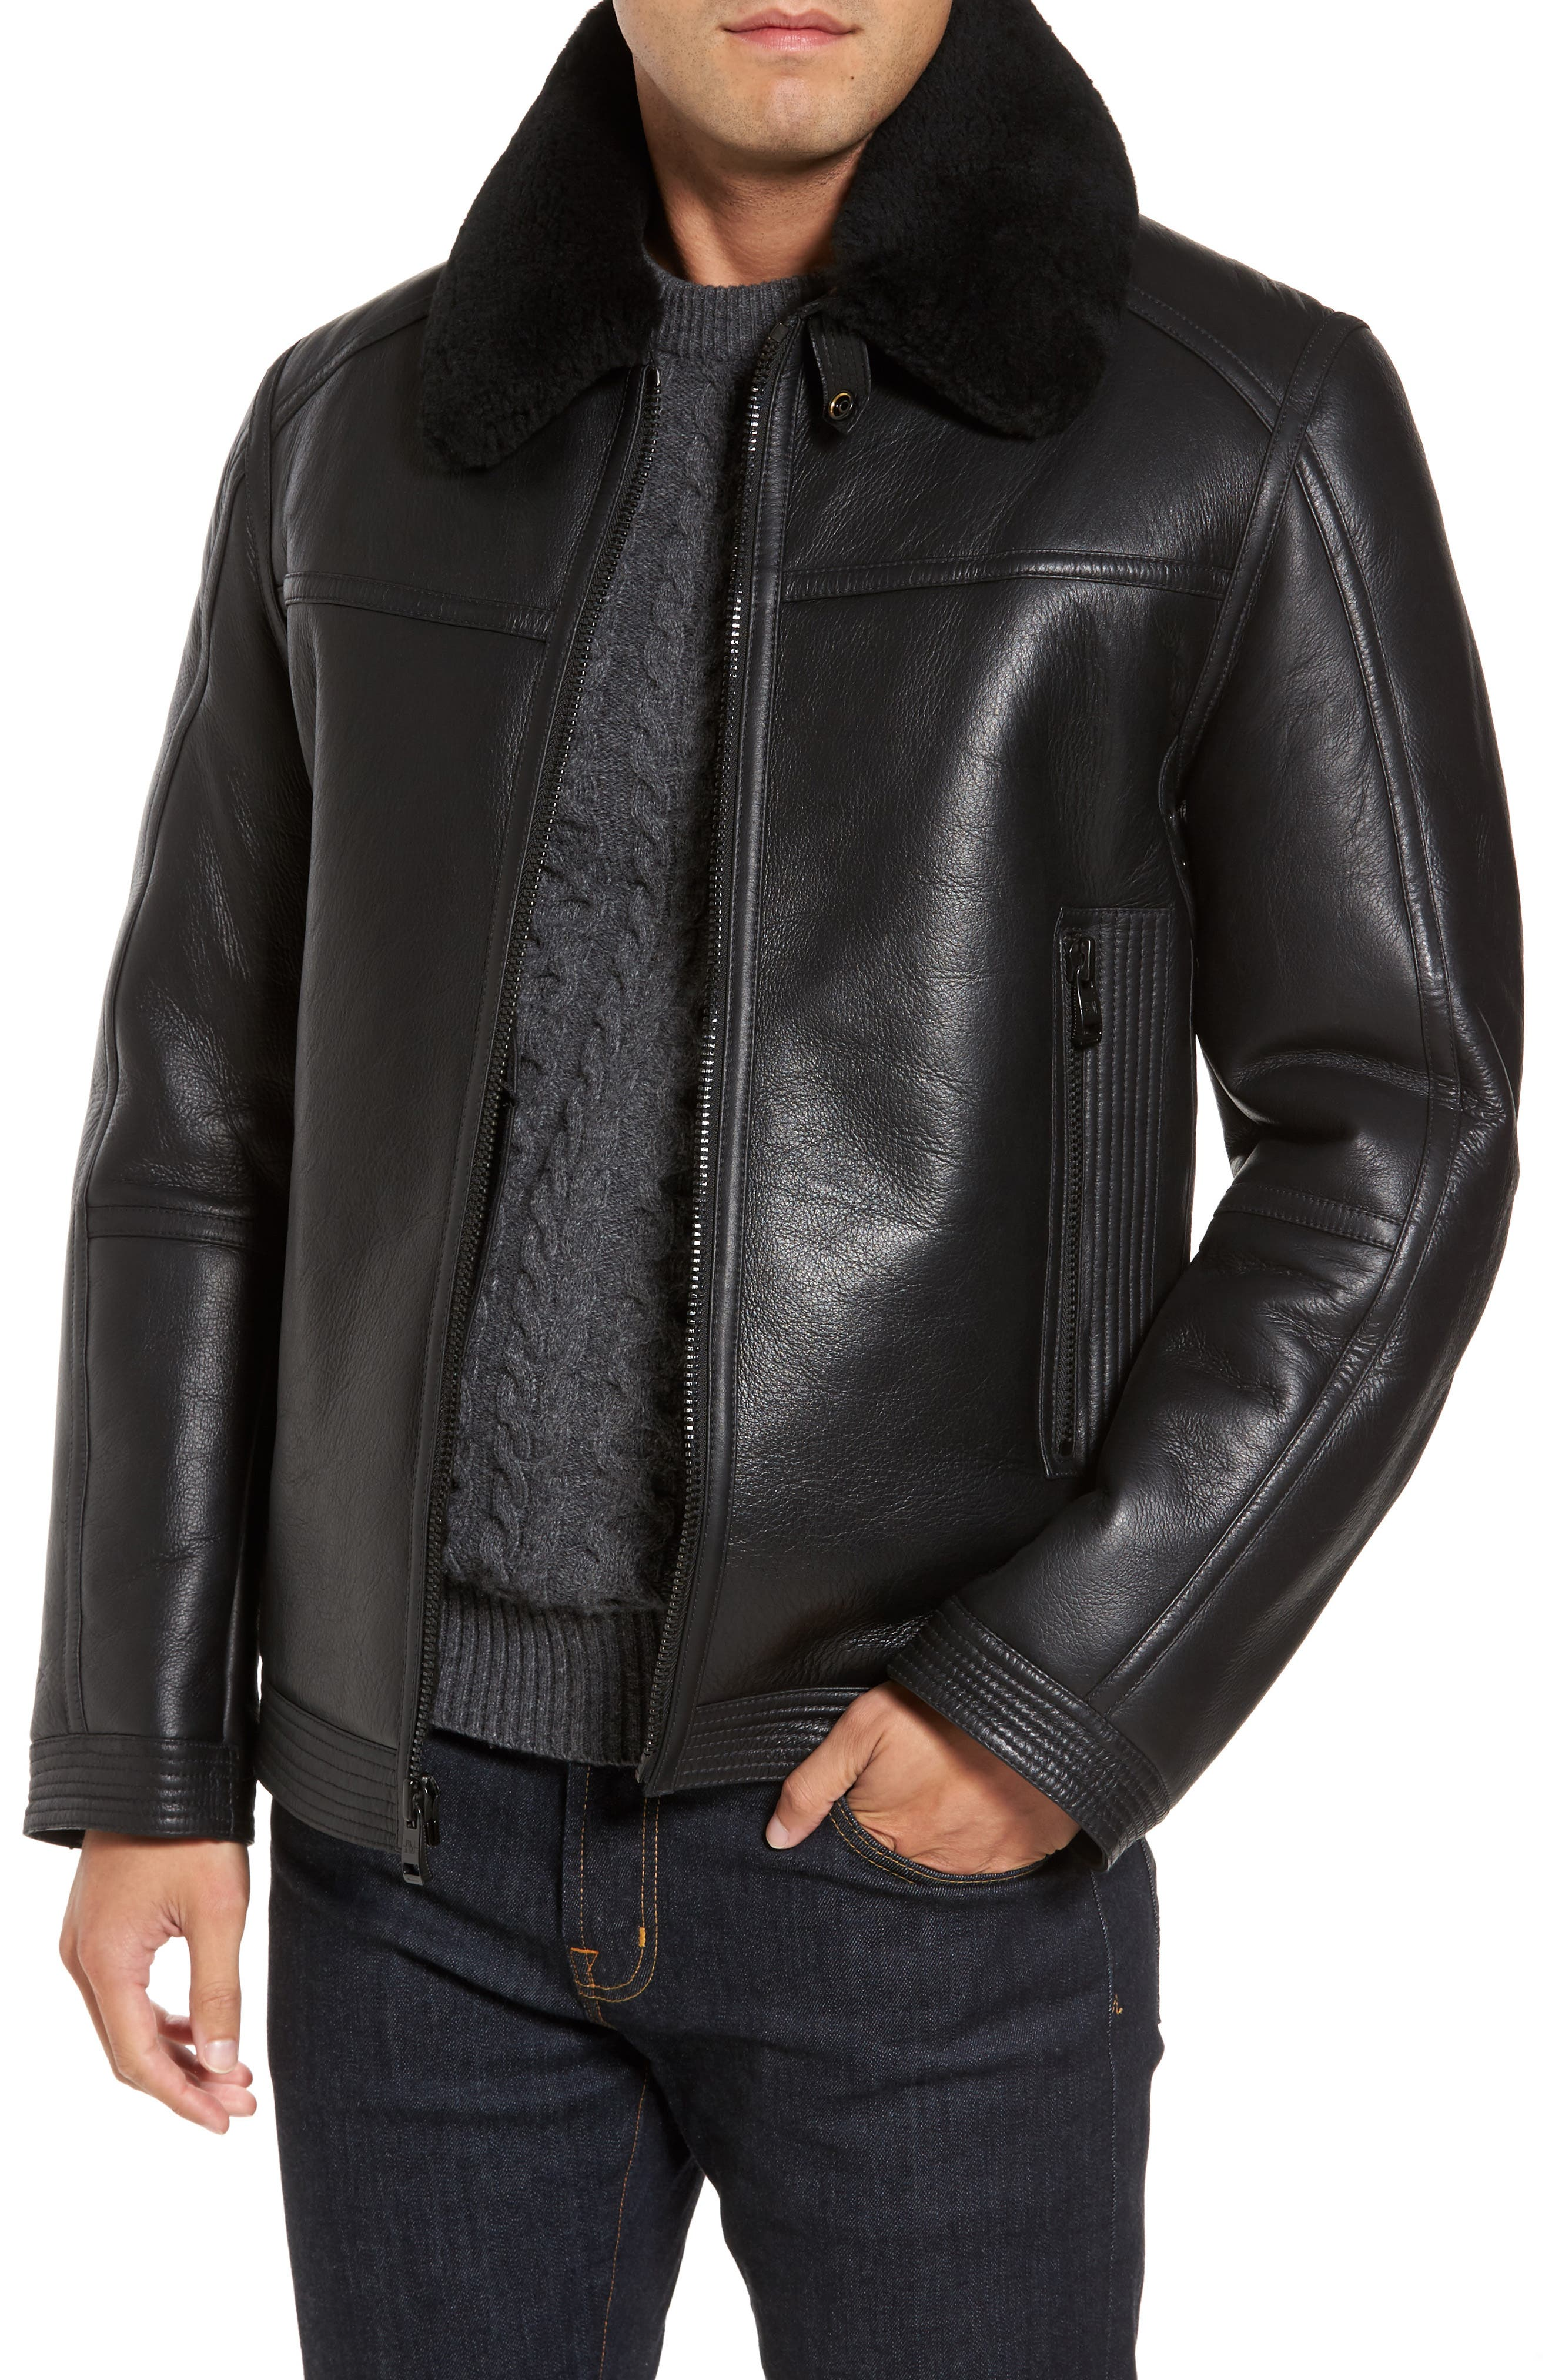 Main Image - Andrew Marc Leather Jacket with Genuine Shearling Collar